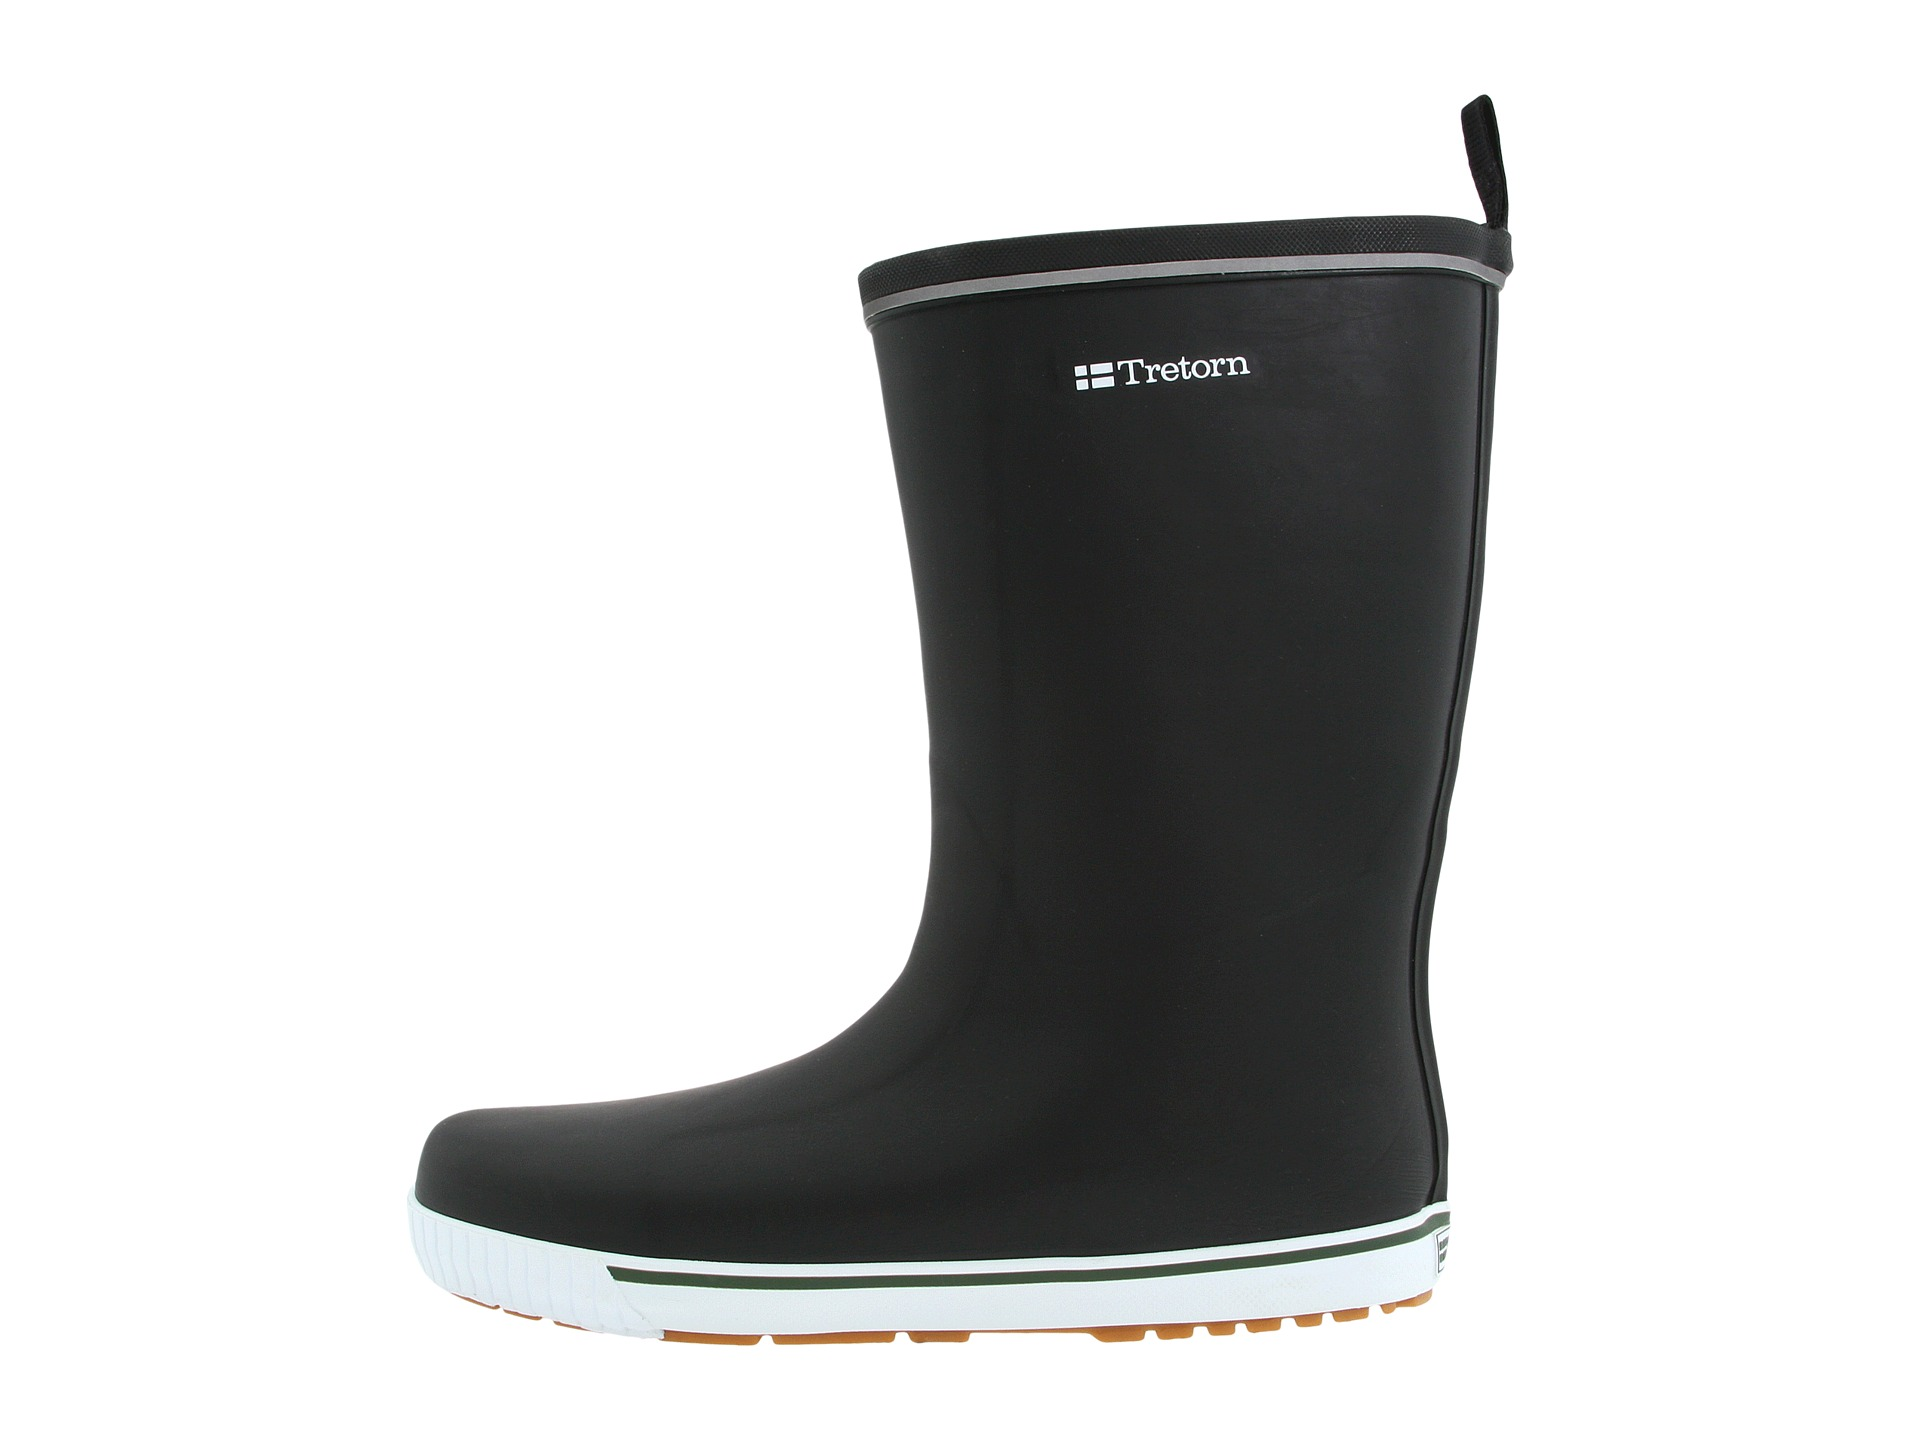 shop all rain boots. Europe Exclusive: The Recycled PU Parka – Made From Recycled Plastics & PET Bottles. learn more. Subscribe to Tretorn & receive 15% off your first order plus you will receive updates on our latest arrivals, exclusive offers, and more. First Name.